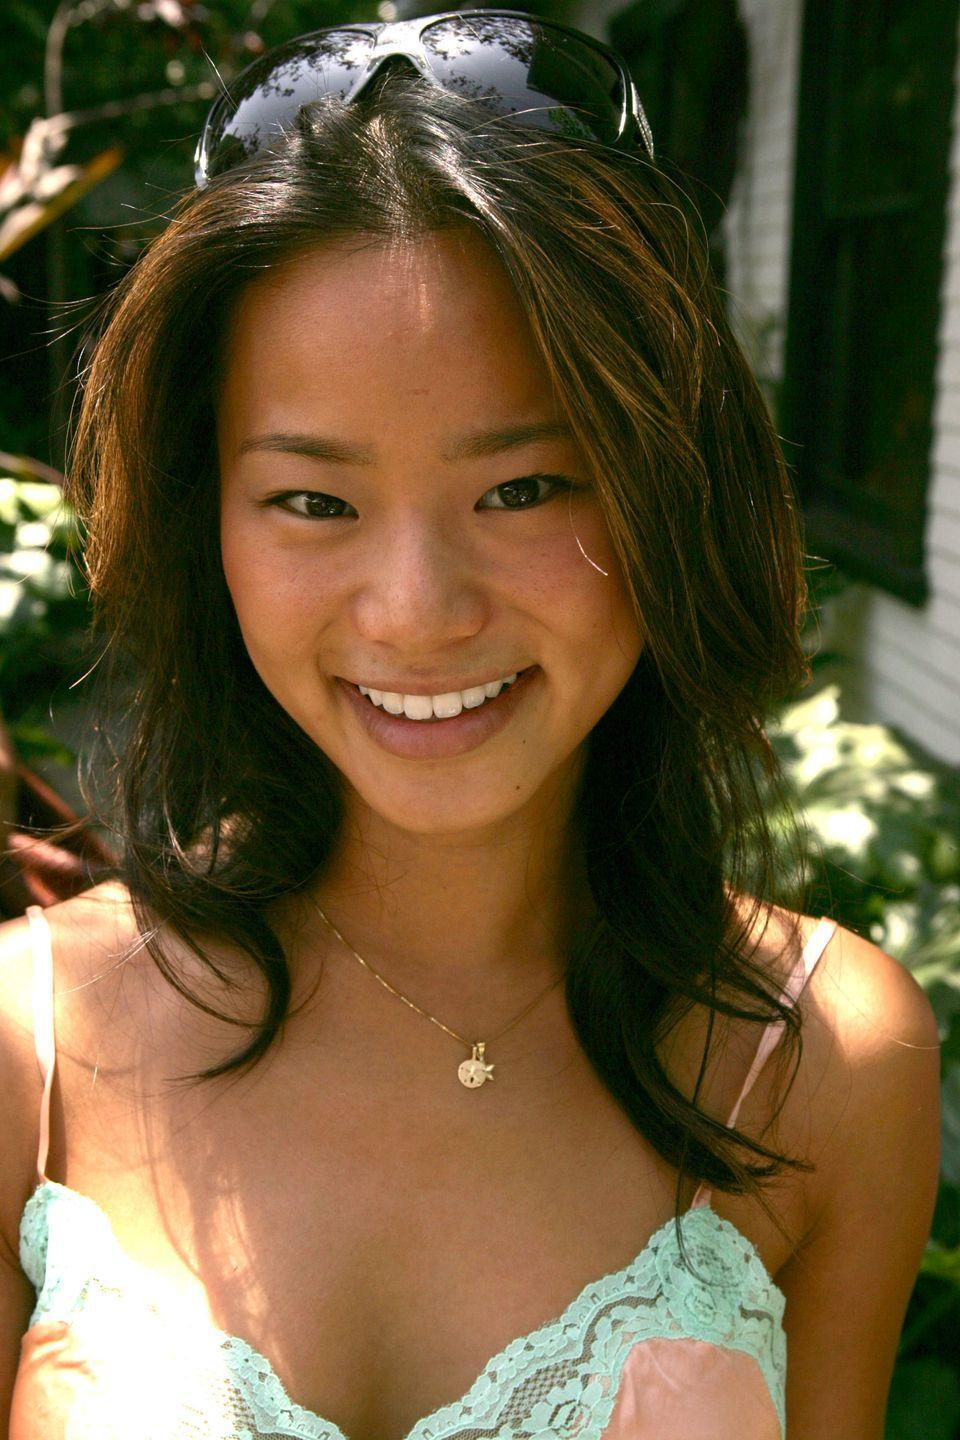 """<p>Jamie Chung was only 20 years old when she was on <em>The Real World: San Diego</em> in 2004. Afterward, she joined the cast of <em>Real World/Road Rules Challenge: The Inferno II </em>in 2005. """"It's a great experience that I would never trade for the world,"""" Chung told the <a href=""""https://www.youtube.com/watch?v=kKENGQIbEZ4"""" rel=""""nofollow noopener"""" target=""""_blank"""" data-ylk=""""slk:BUILD Series"""" class=""""link rapid-noclick-resp"""">BUILD Series</a> about her time on reality TV, while lamenting about the lack of privacy.</p>"""